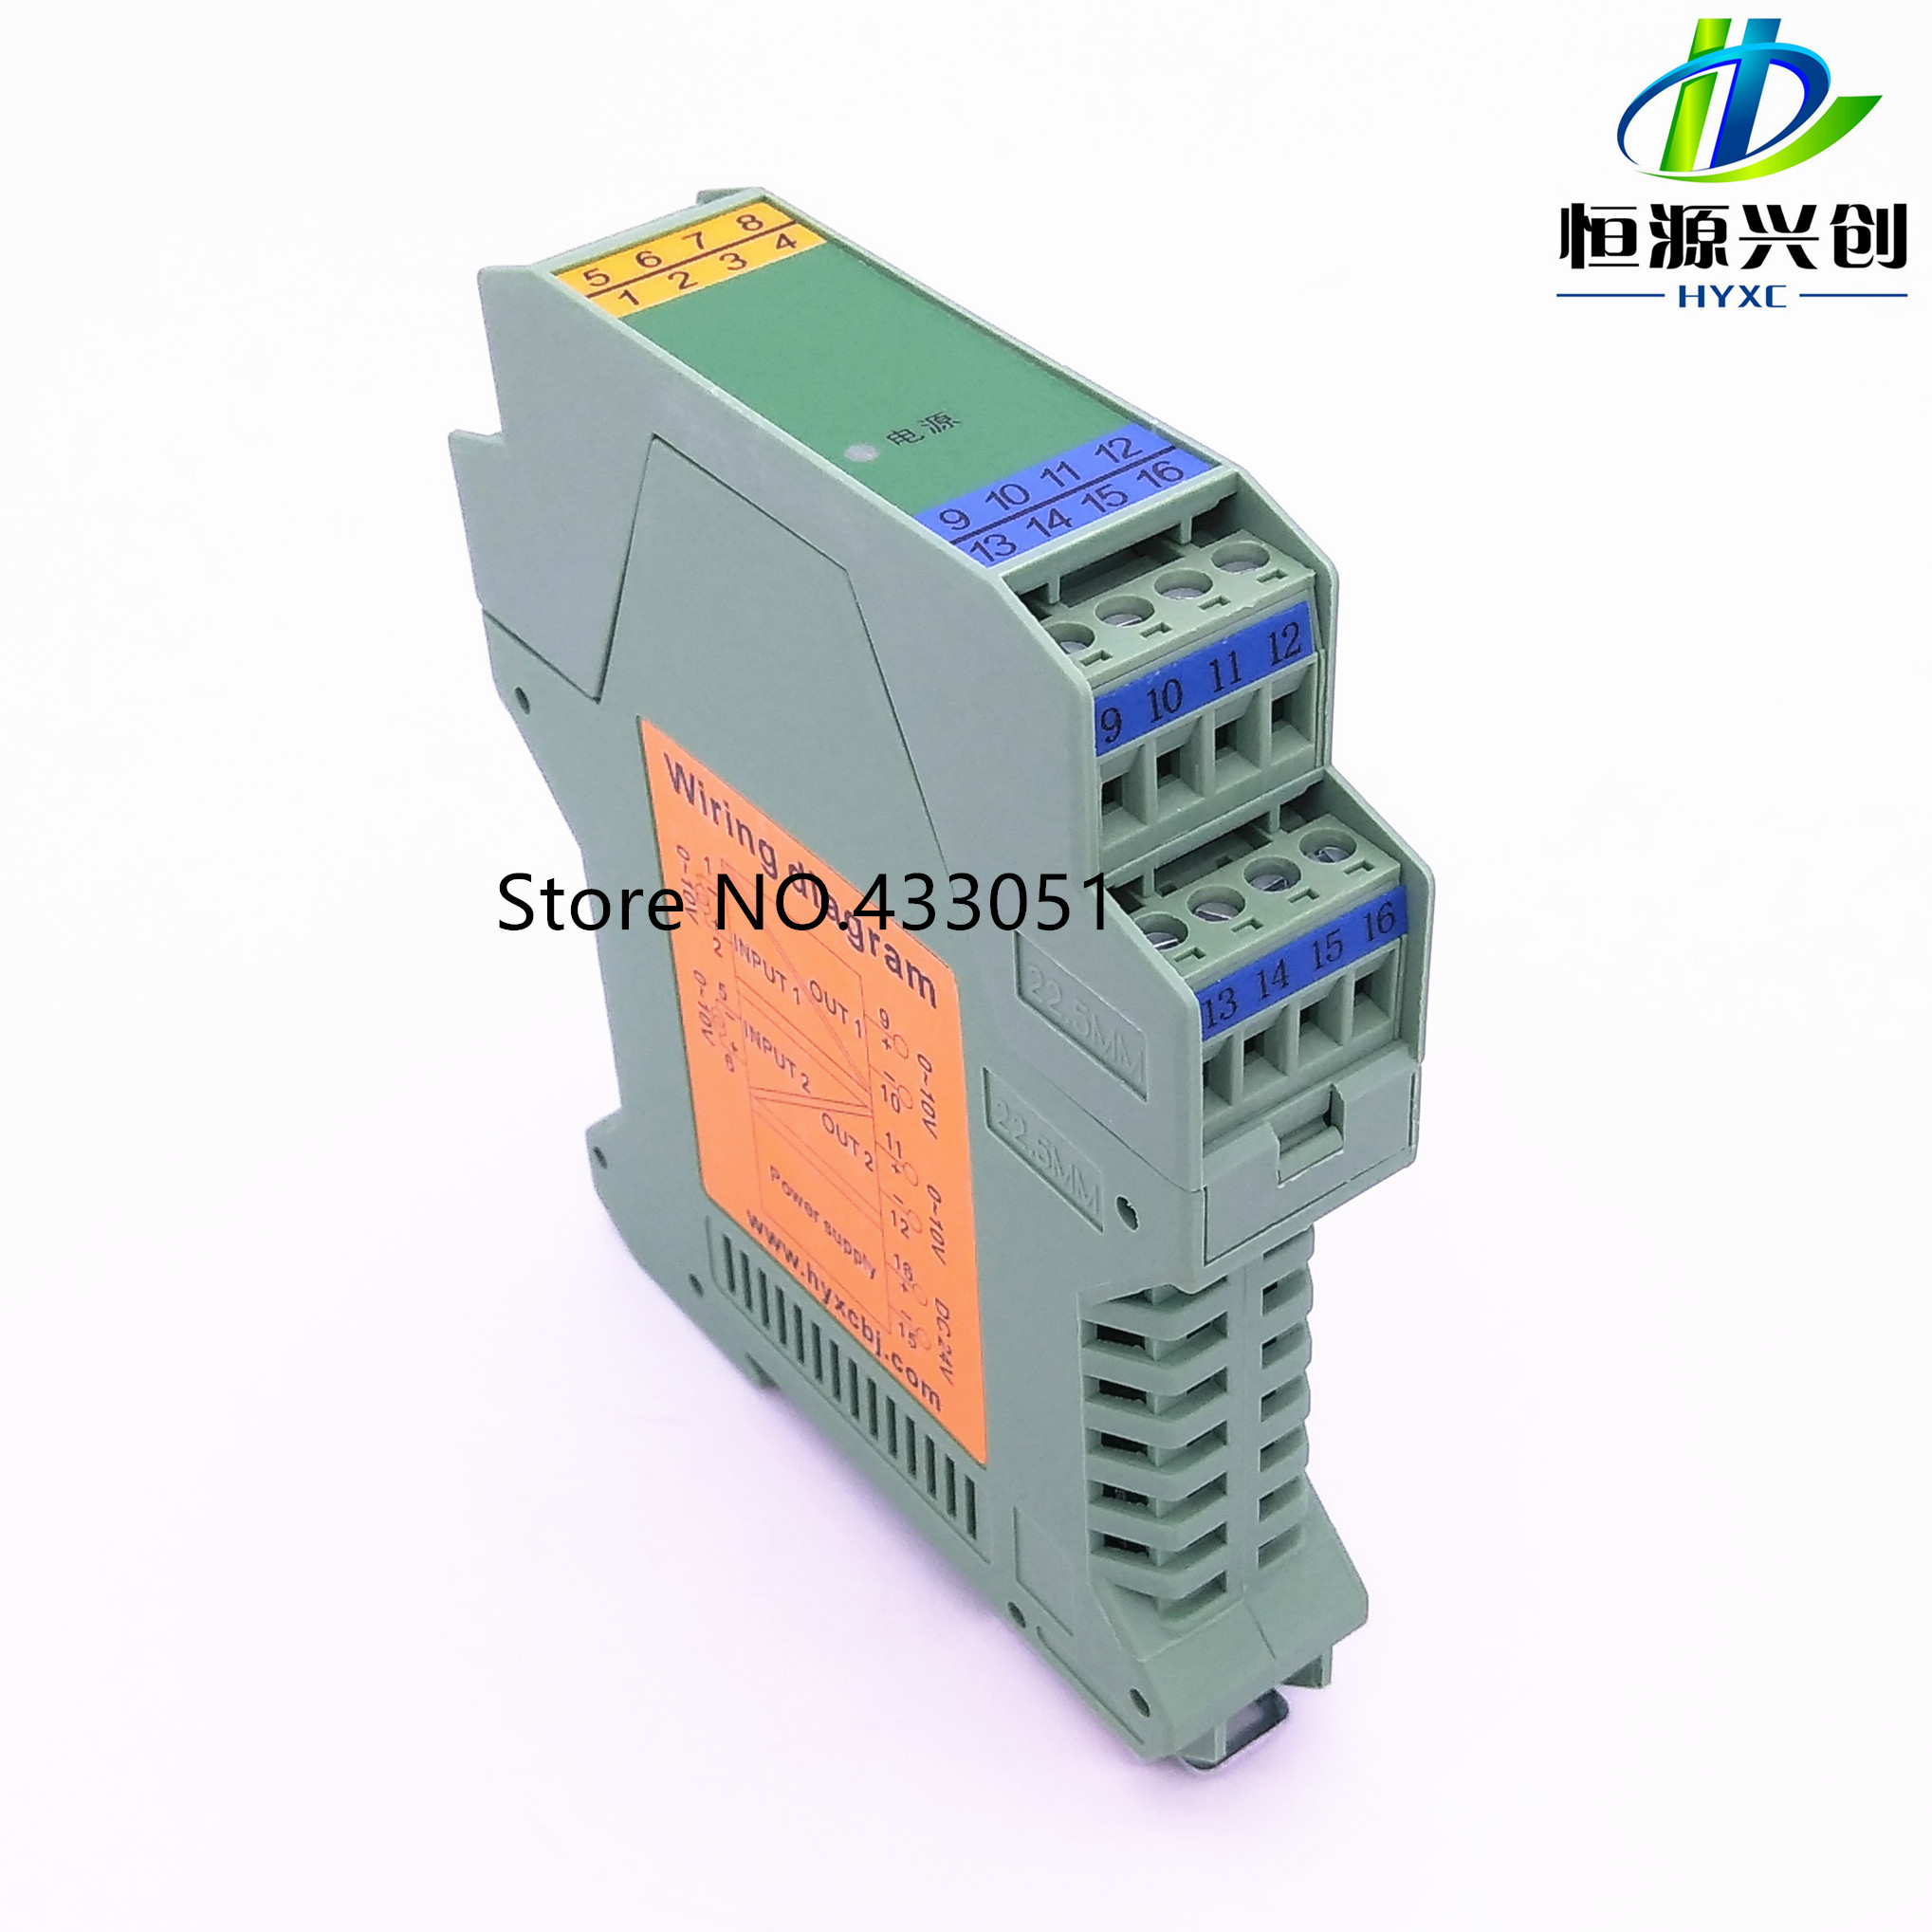 Signal isolation transmitter Current, voltage transmitter Multiple input, multiple output 4-20MA, 0-5V, 0-10V